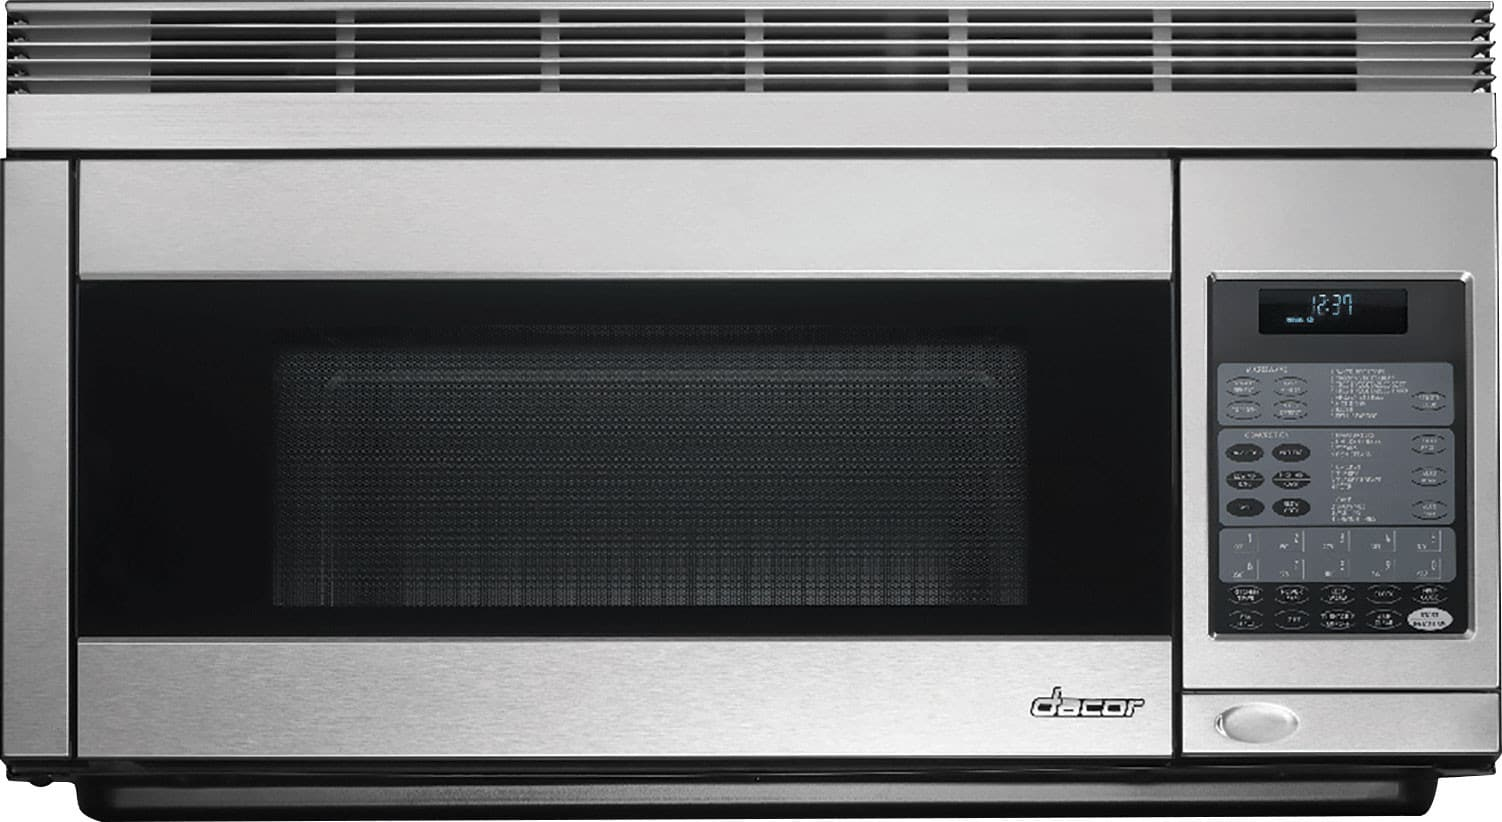 Rated Microwave Ovens Microwave Ovens Official Kitchenaid